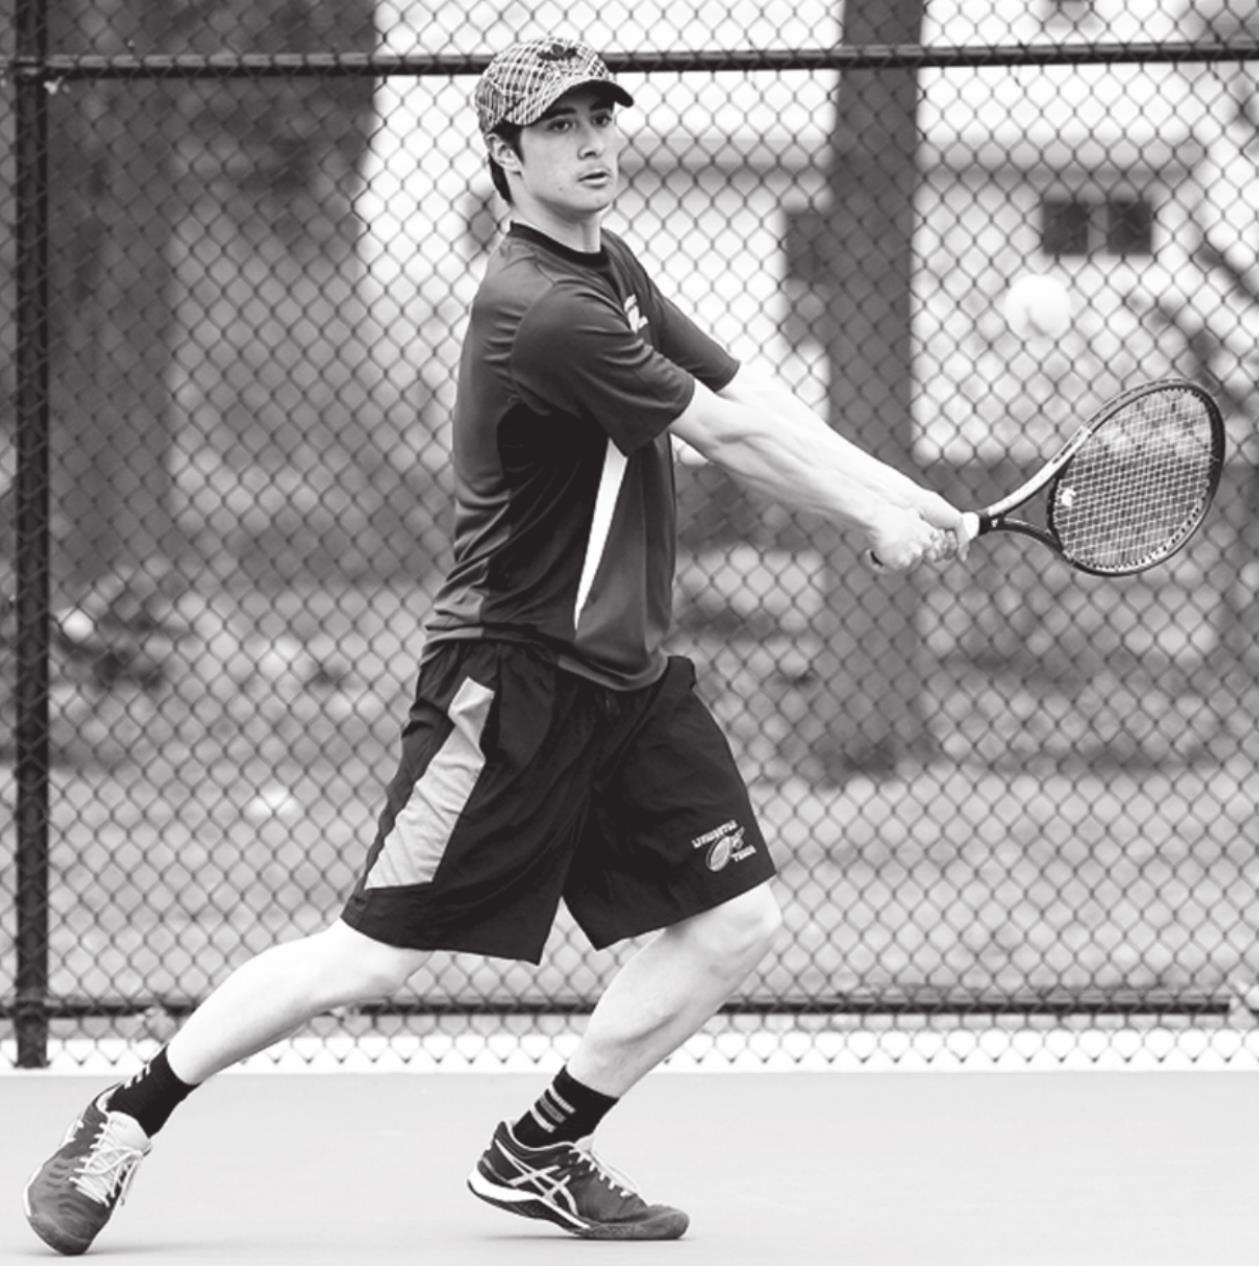 Tennis Coach Reflects on Loss of Season